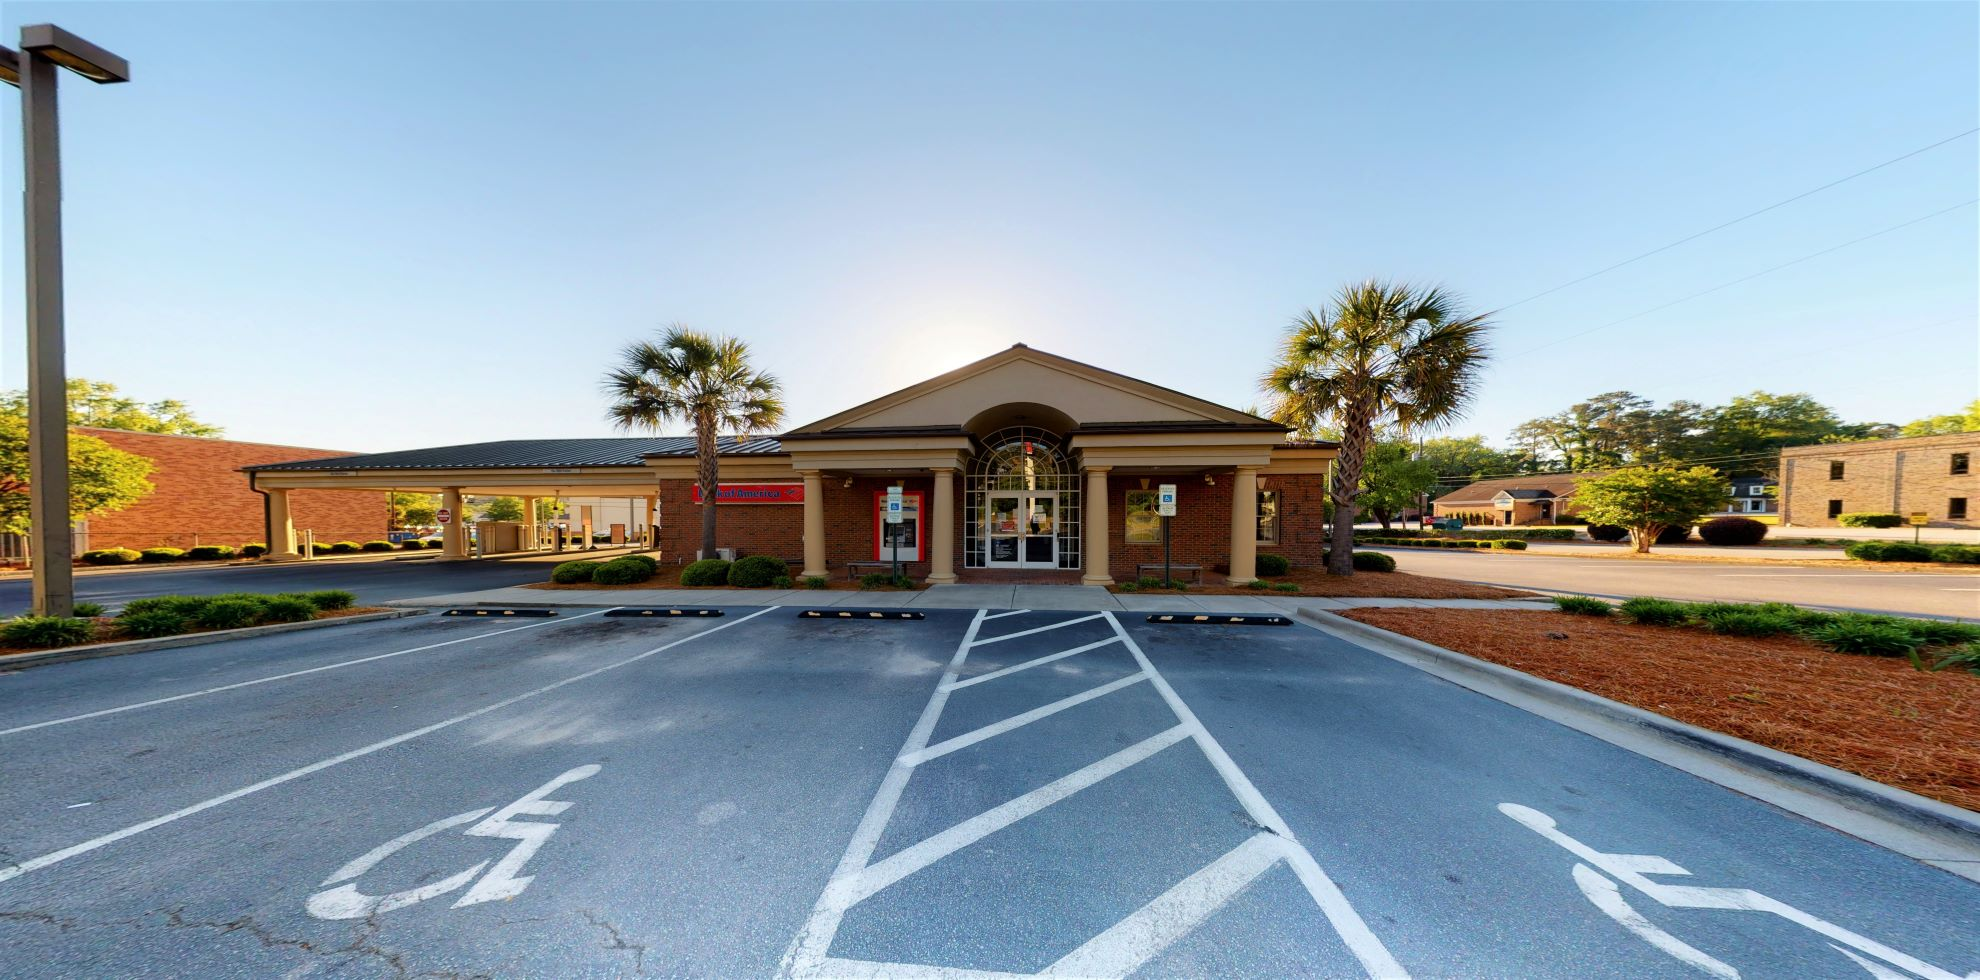 Bank of America financial center with drive-thru ATM and teller   5004 Trenholm Rd, Columbia, SC 29206